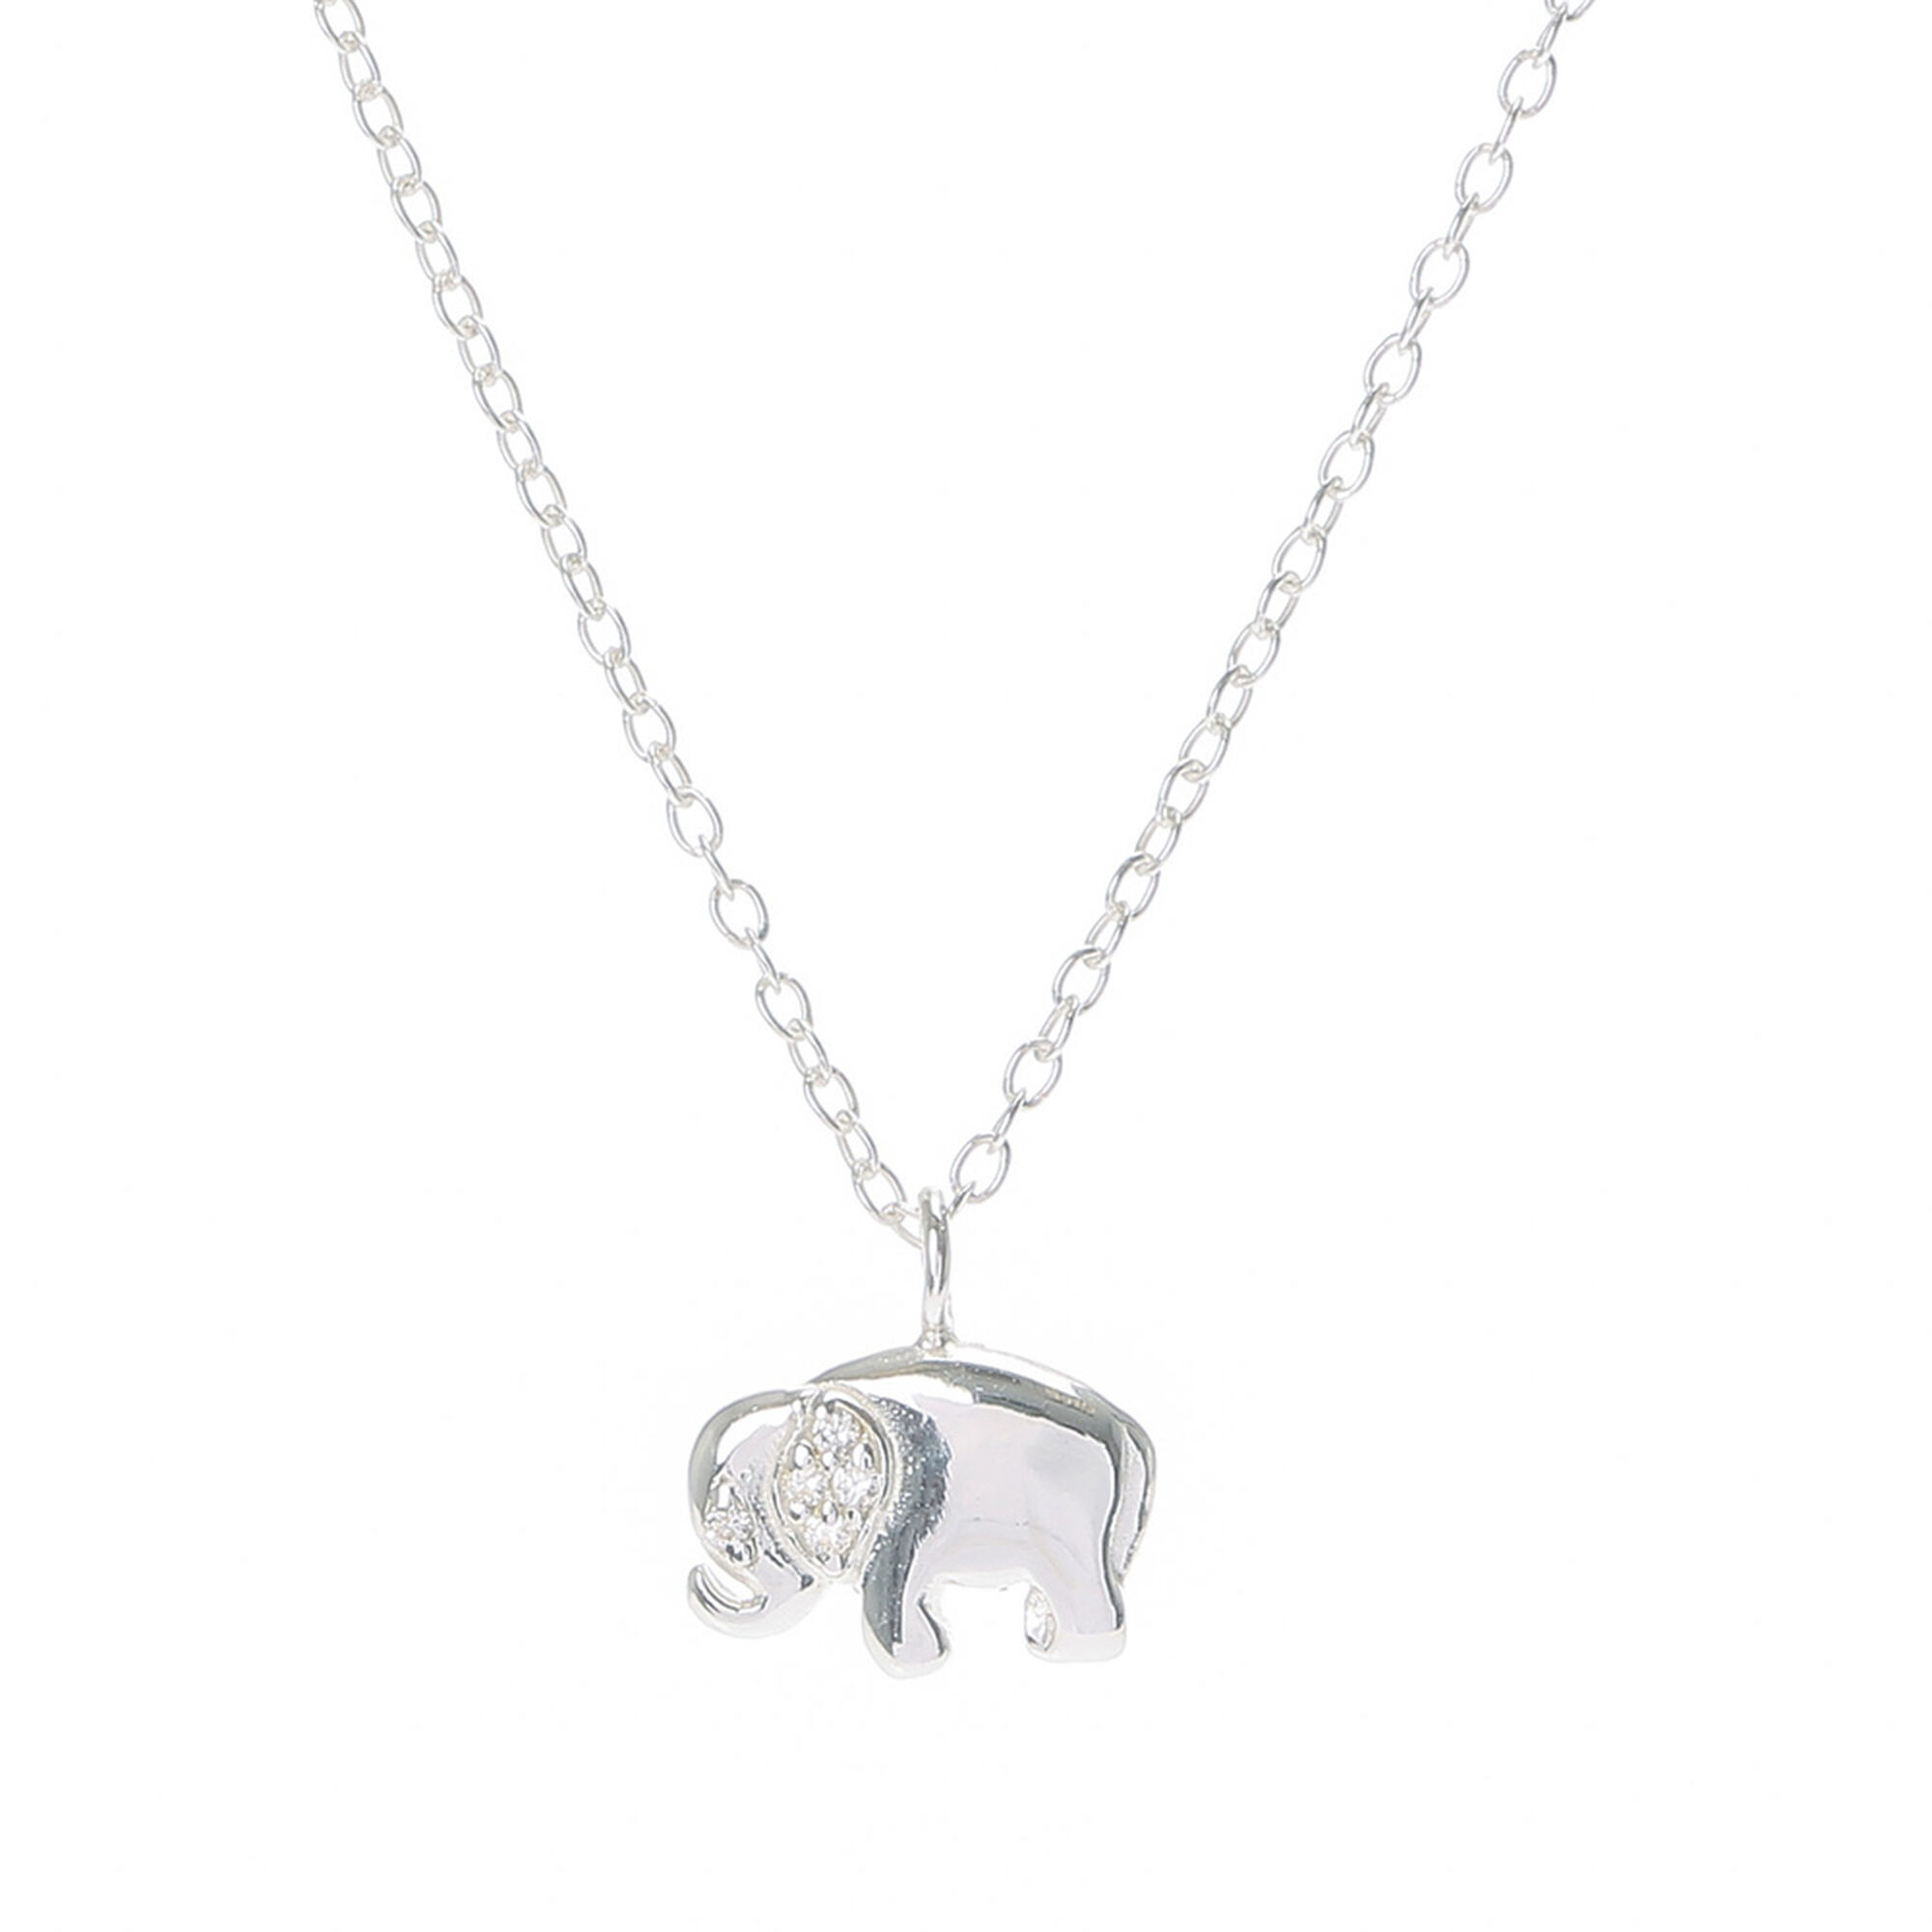 Sterling silver elephant necklace claires us sterling silver elephant necklace mozeypictures Image collections